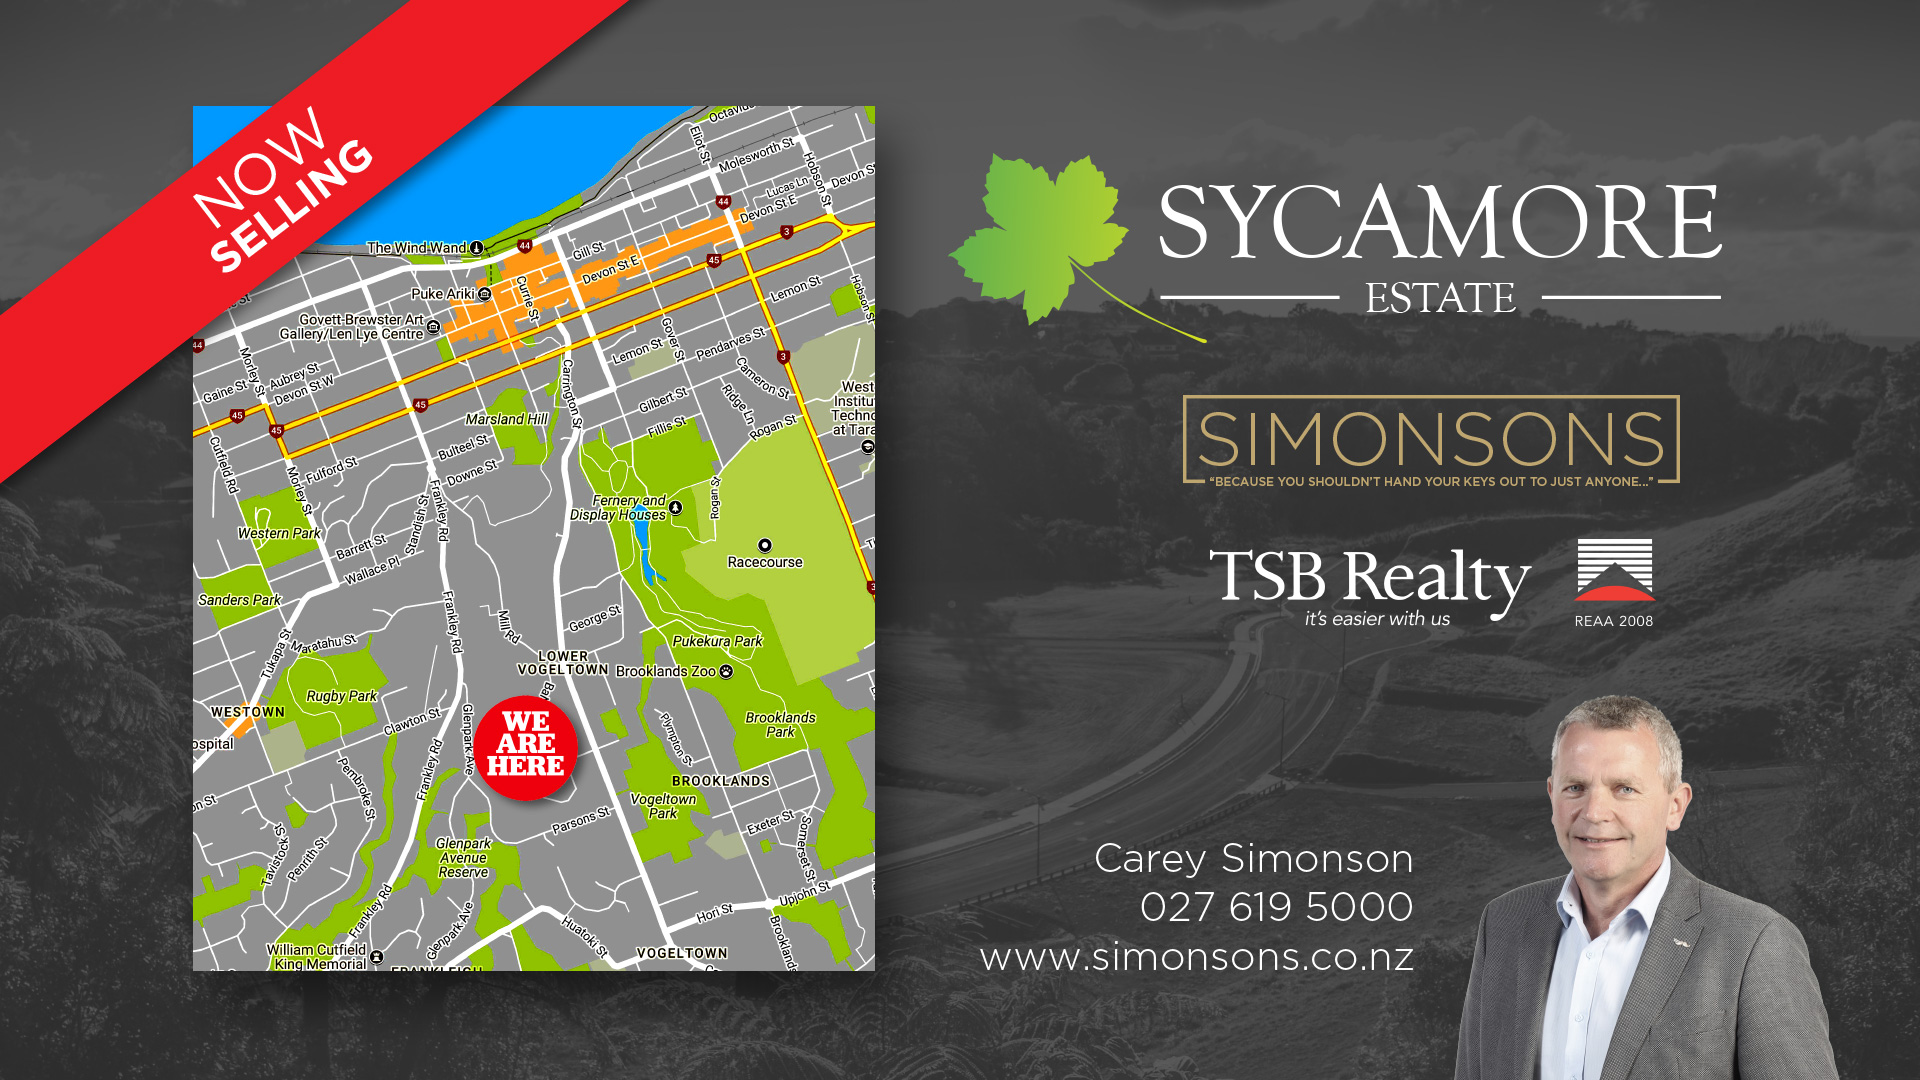 Lot 23 Sycamore Estate